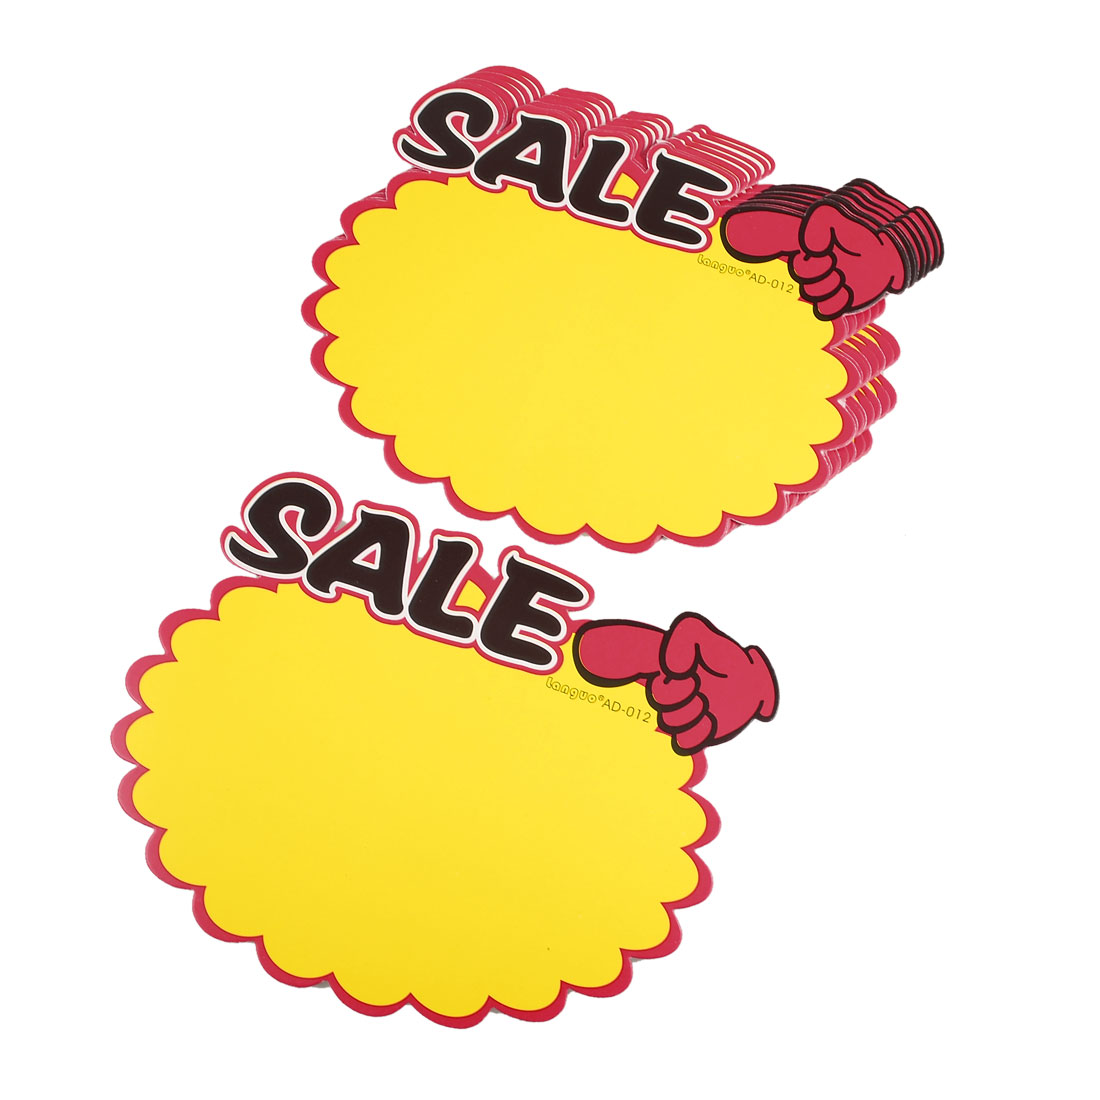 10 Pcs SALE Pattern Index Finger Point Promotion Sale Cards Advertising Pop Price Tags